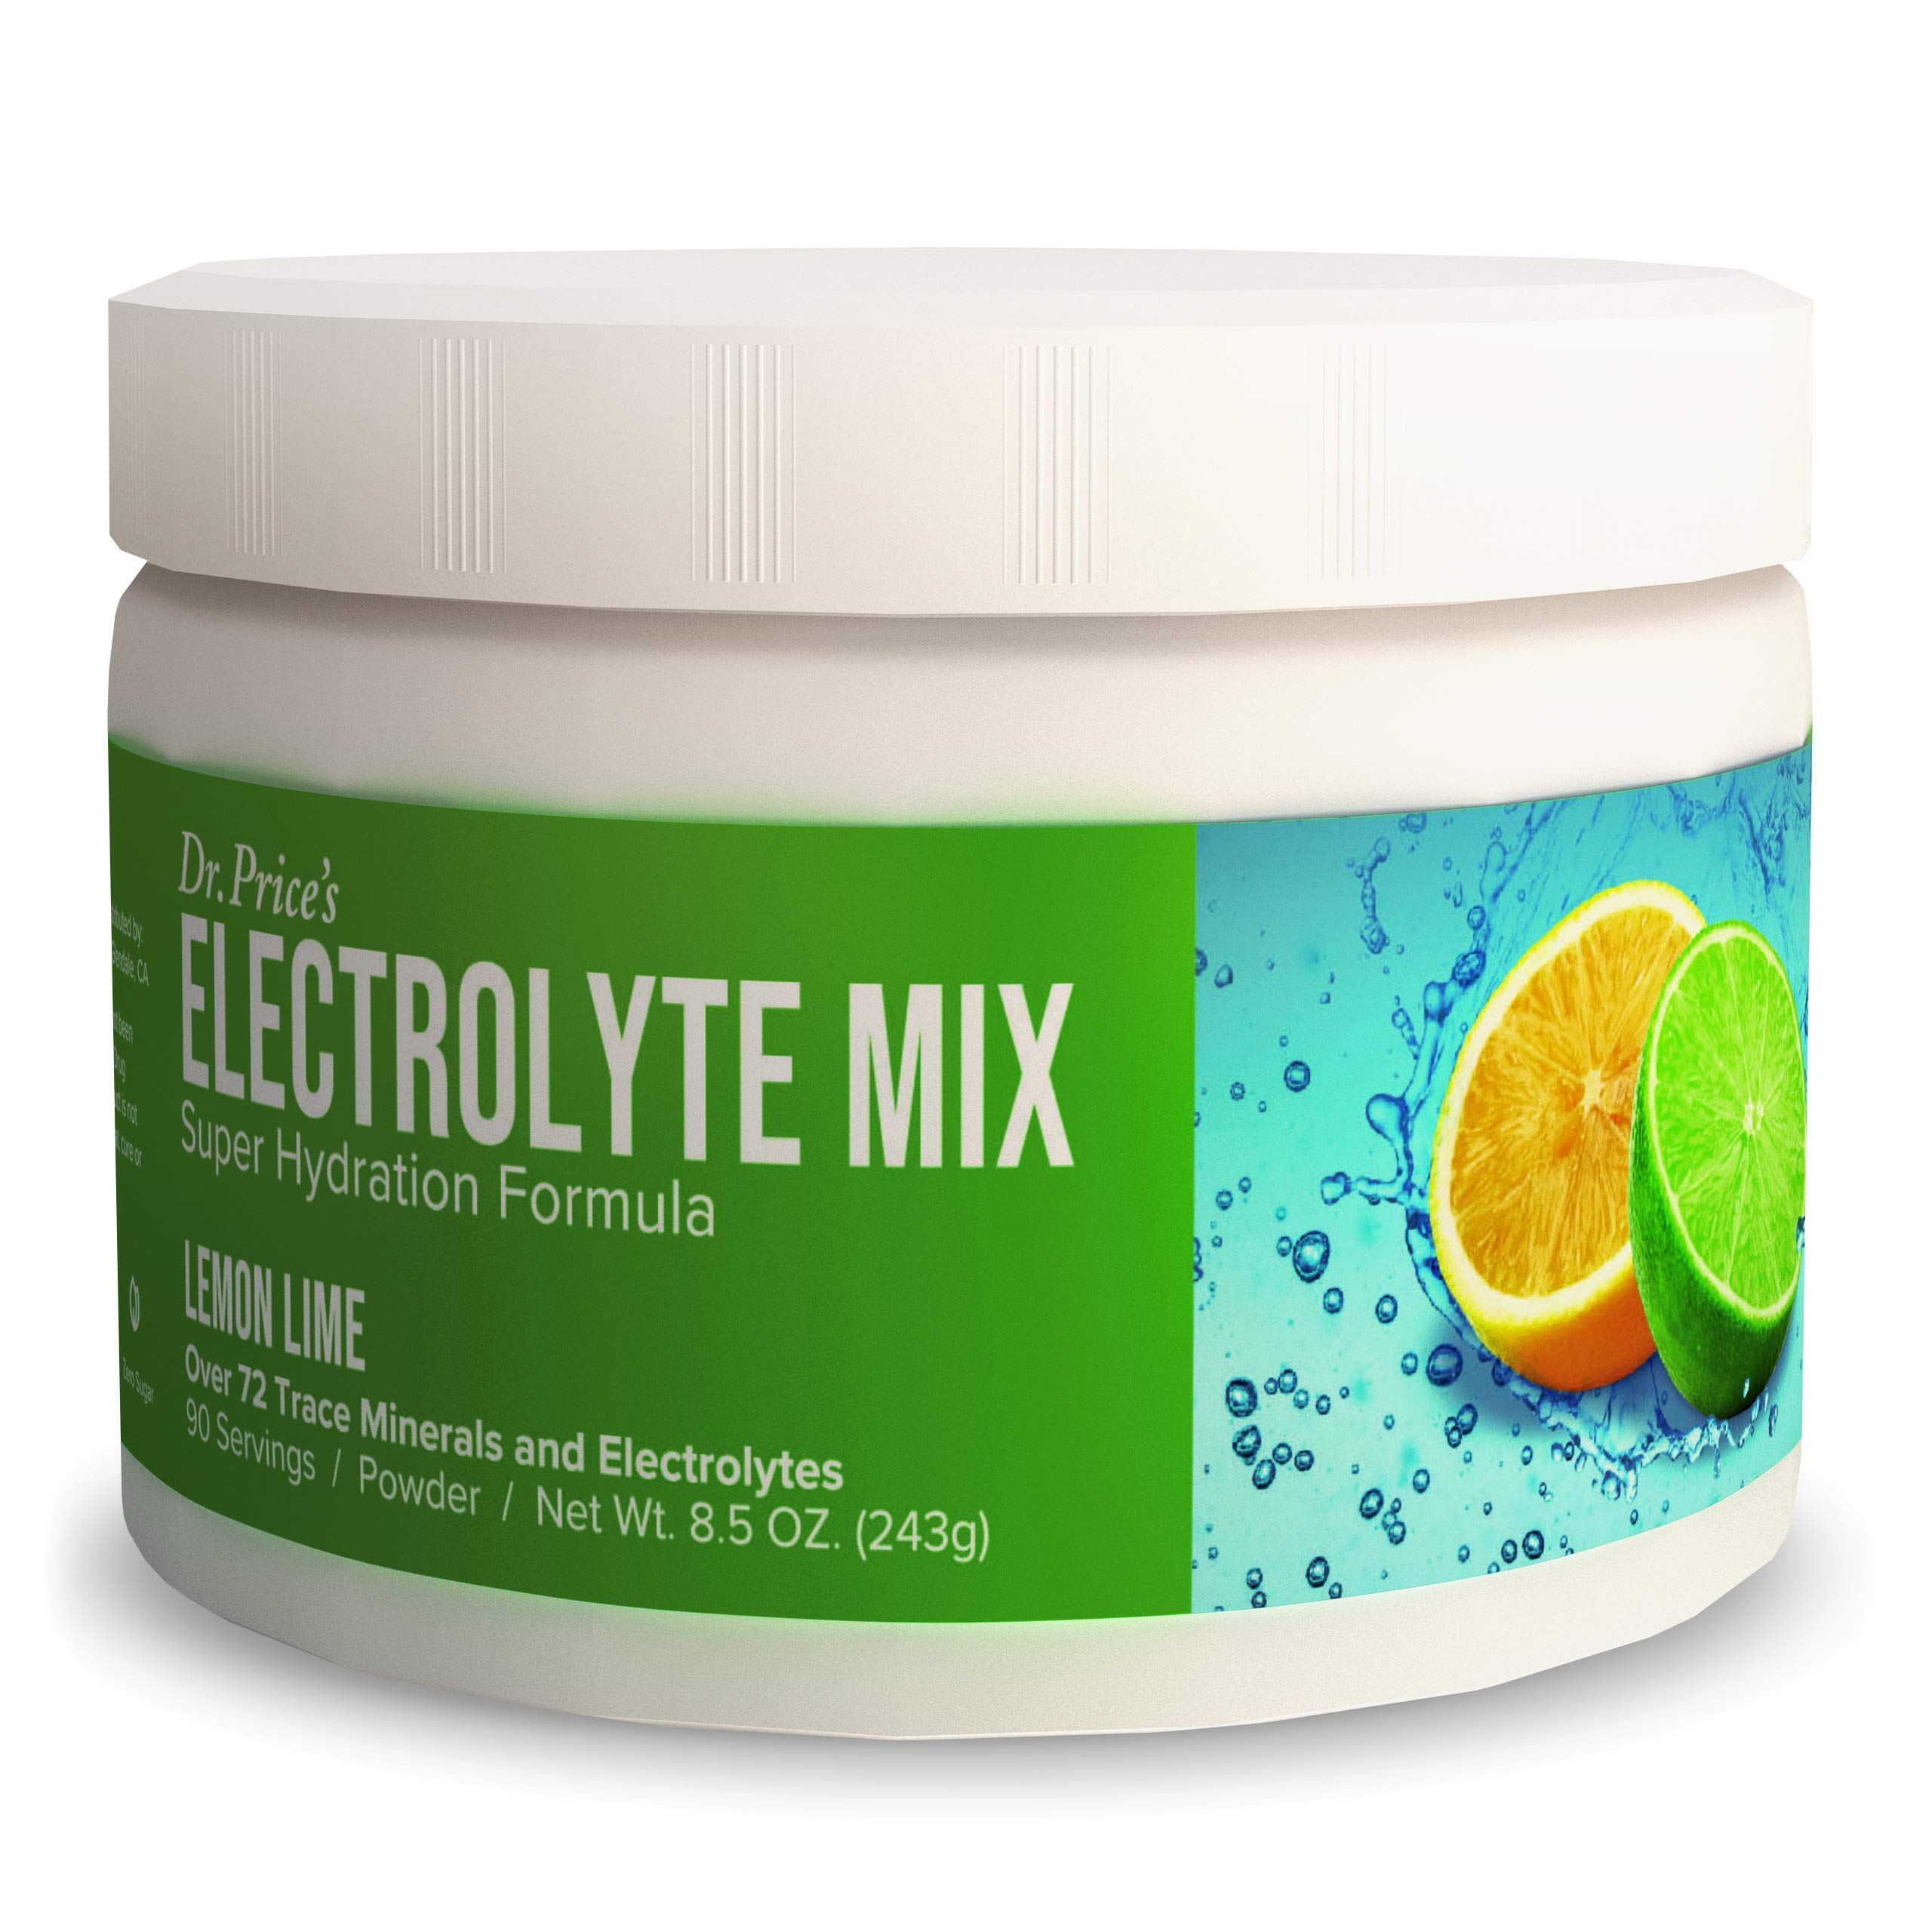 Electrolyte Mix Supplement Powder, 90 Servings, 72 Trace Minerals, Potassium, Sodium, Electrolyte Replacement Keto Drink | Lemon-Lime Flavor | Dr. Price's Vitamins, No Sugar, Vegan, Non-GMO by Dr. Price's Vitamins